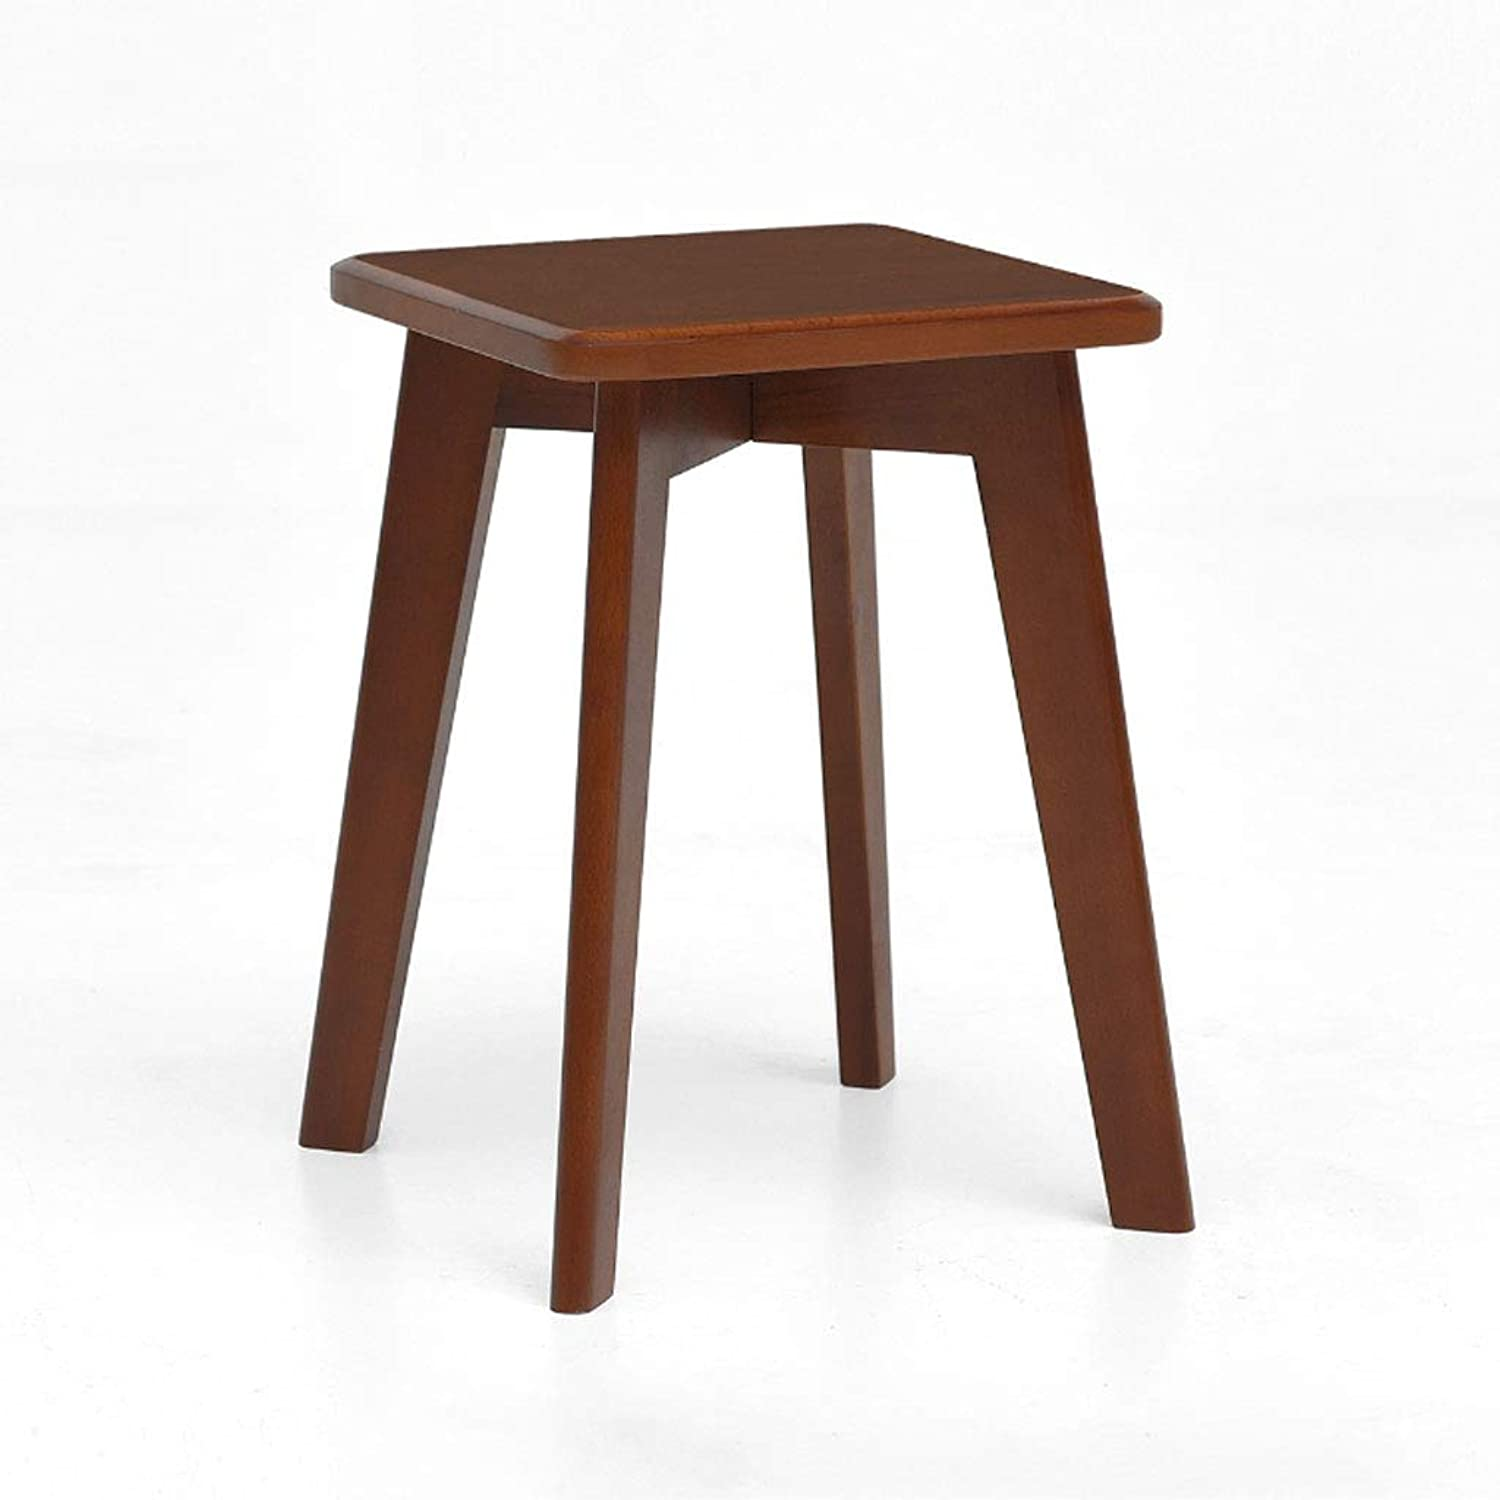 ZXW STOOLS- Solid Wood Stool Simple Modern Living Room Dining Stool Fashion Makeup Stool Adult Small Bench (color   Walnut color, Size   30x30x43cm)